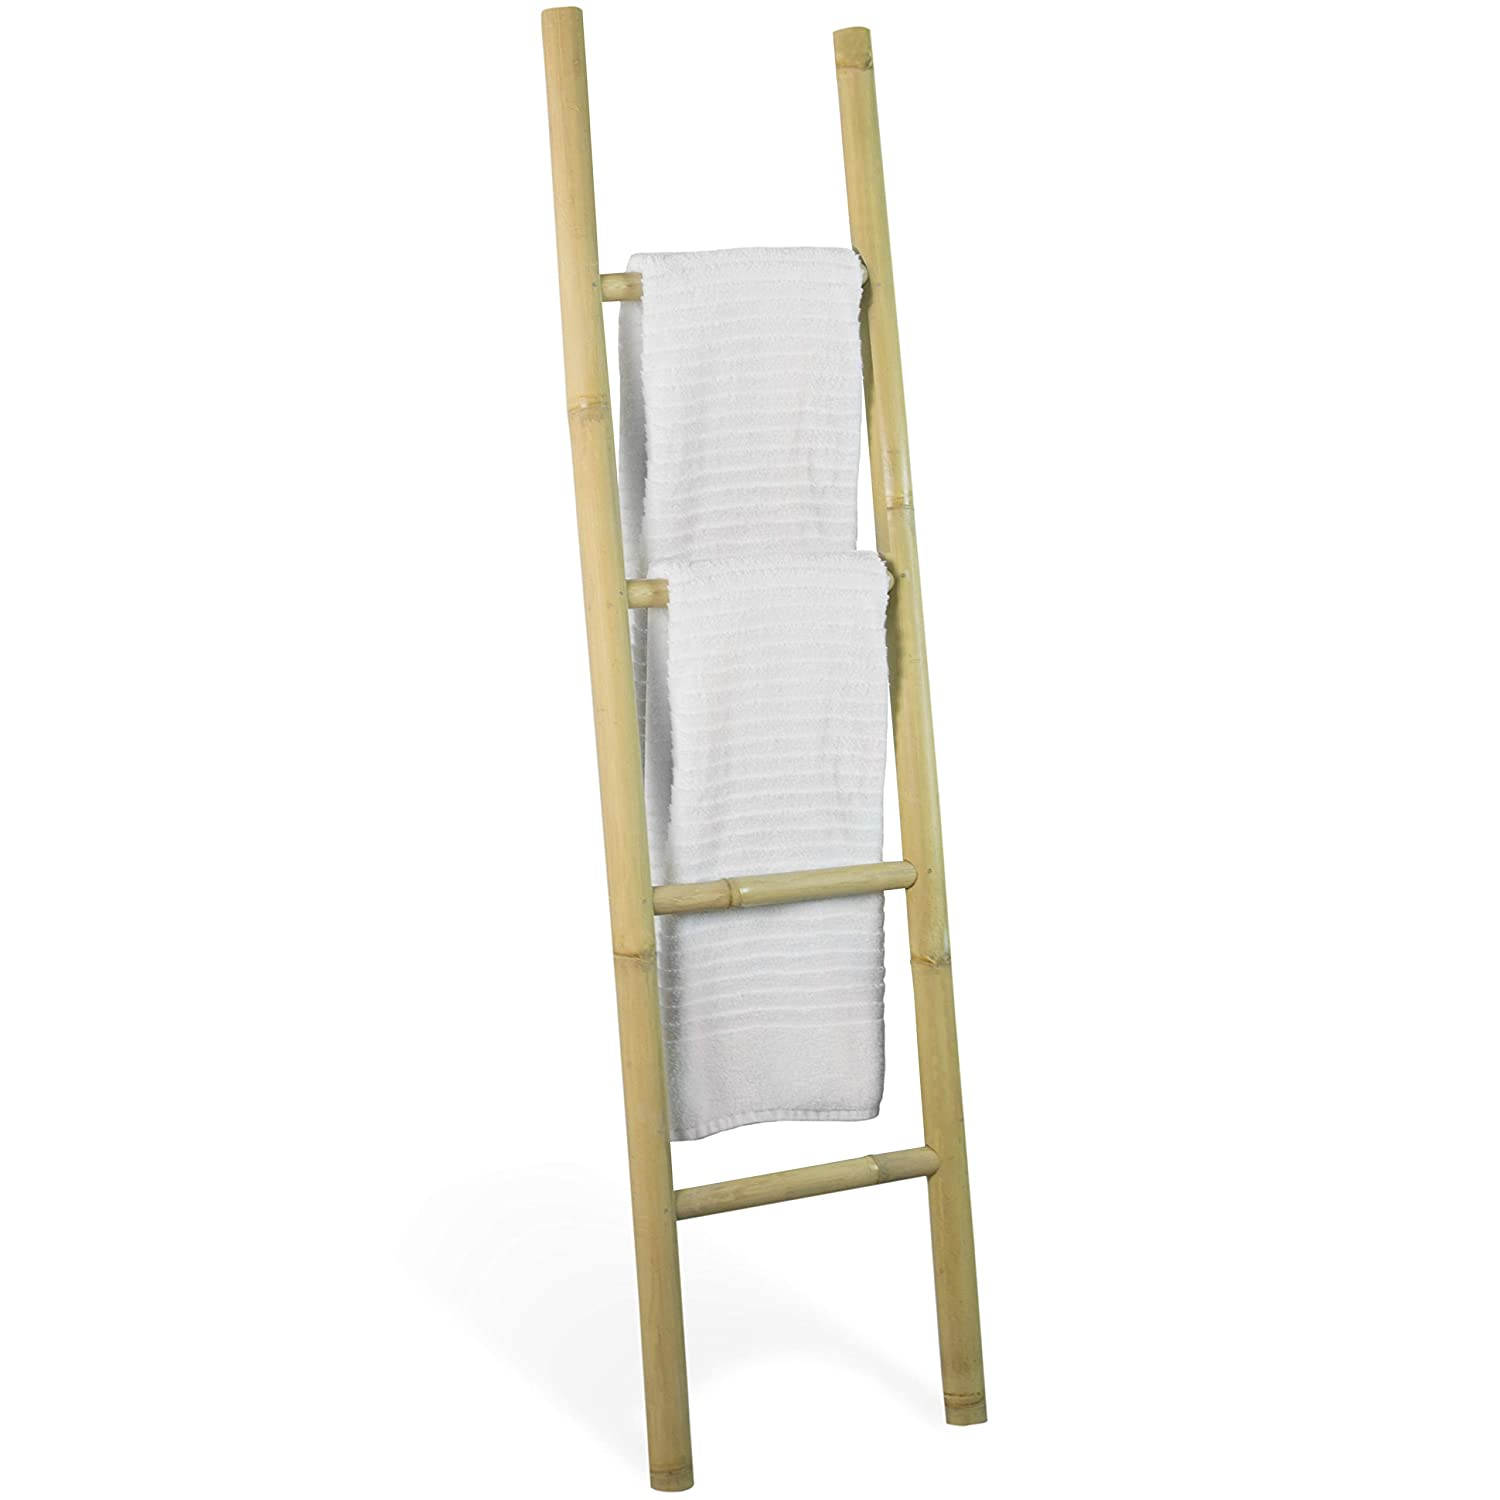 Decorative 5 Foot Natural Beige Bamboo Wall Leaning Towel Ladder Rack Made In Indonesia